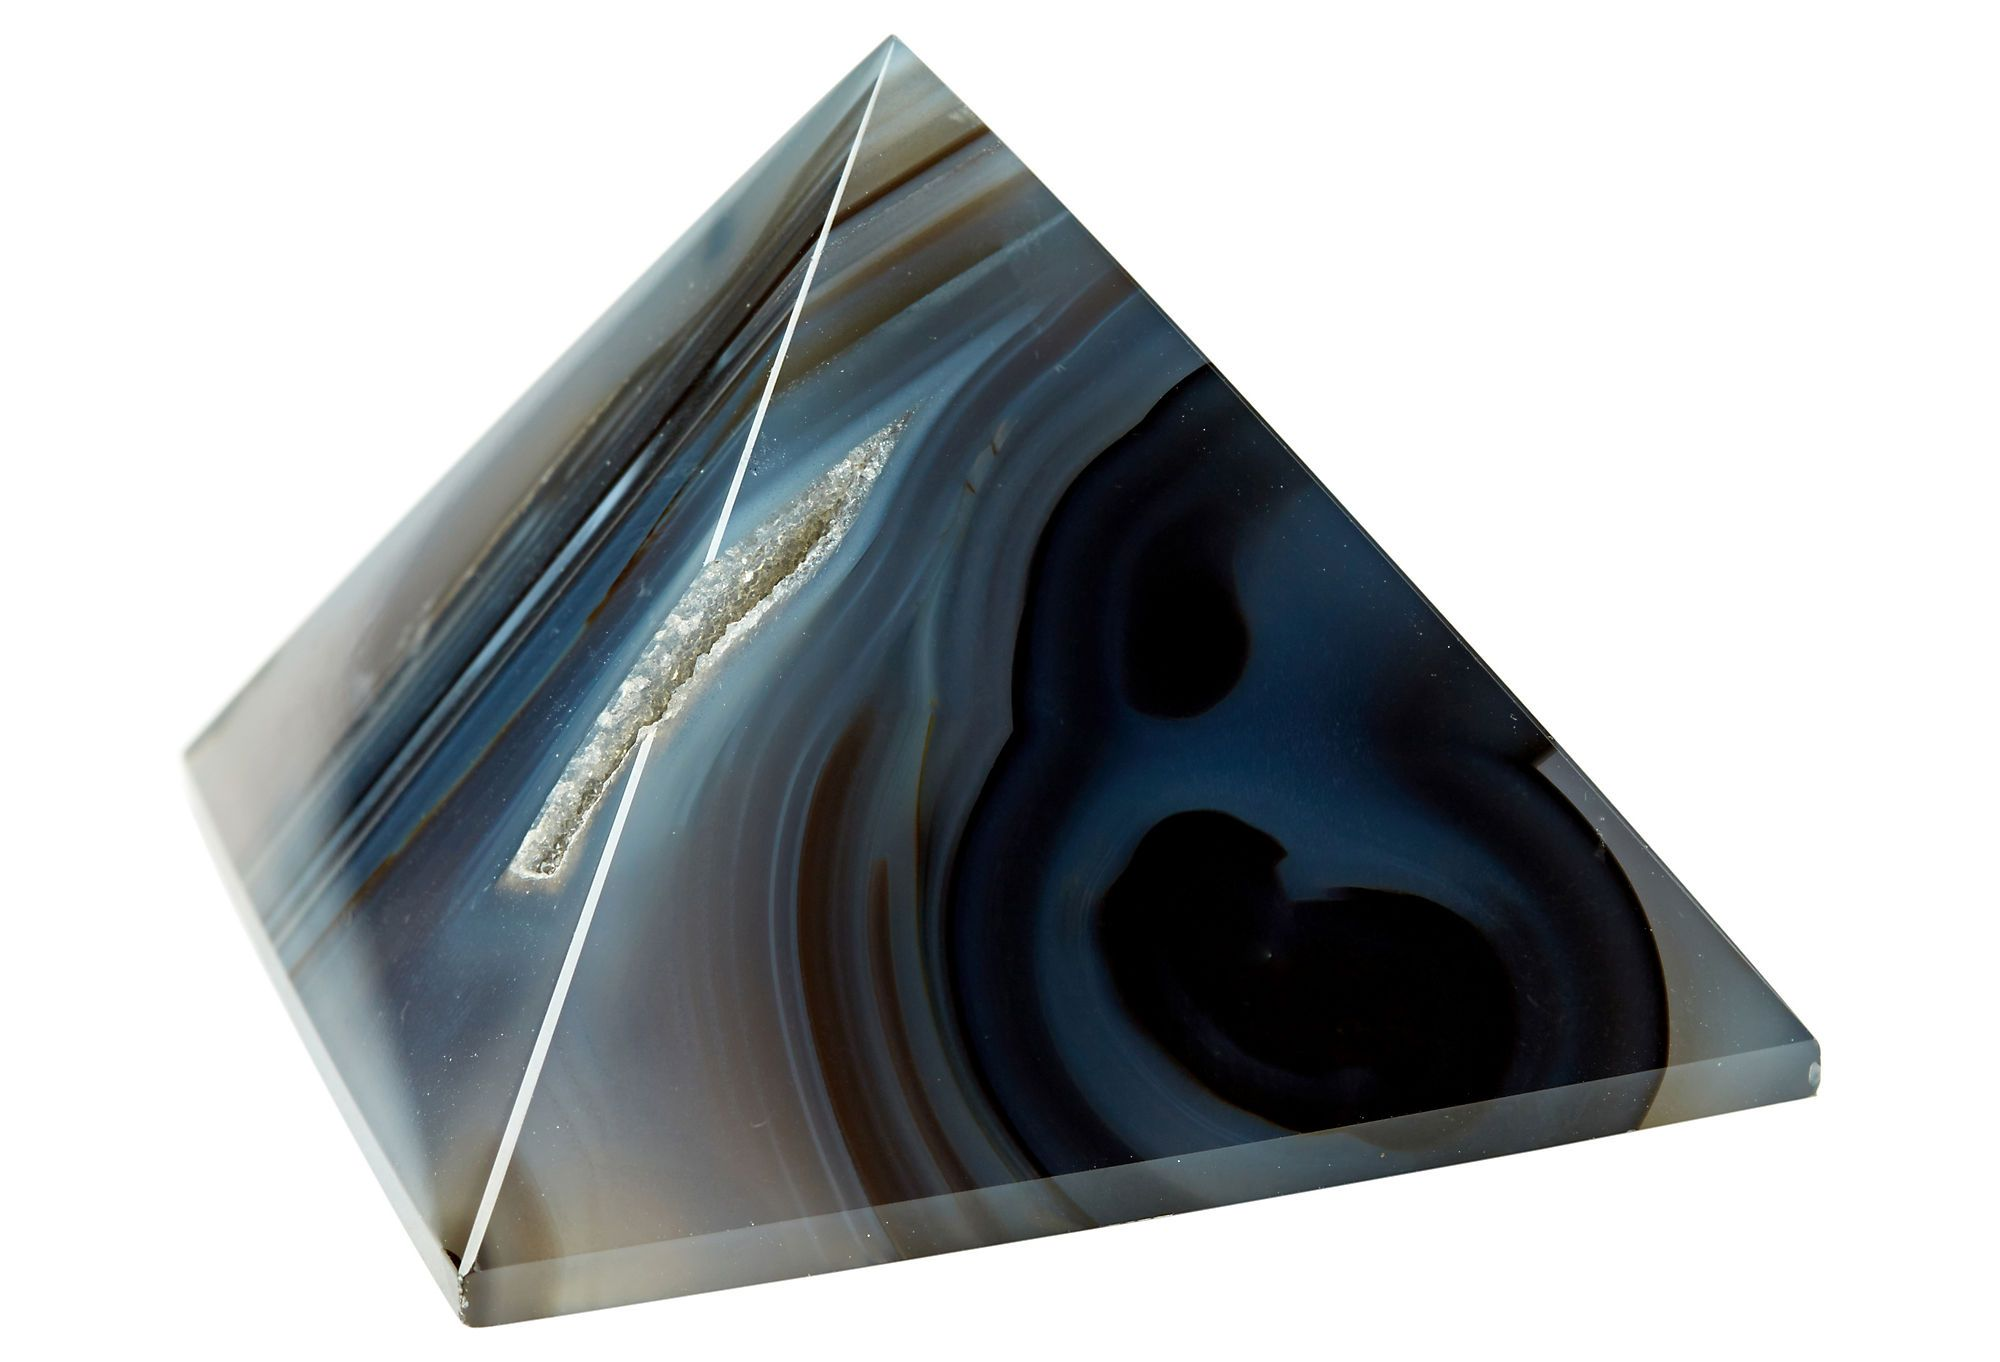 One Kings Lane - Wit & Whimsy - Stone Paperweight, Agate Pyramid, Nat